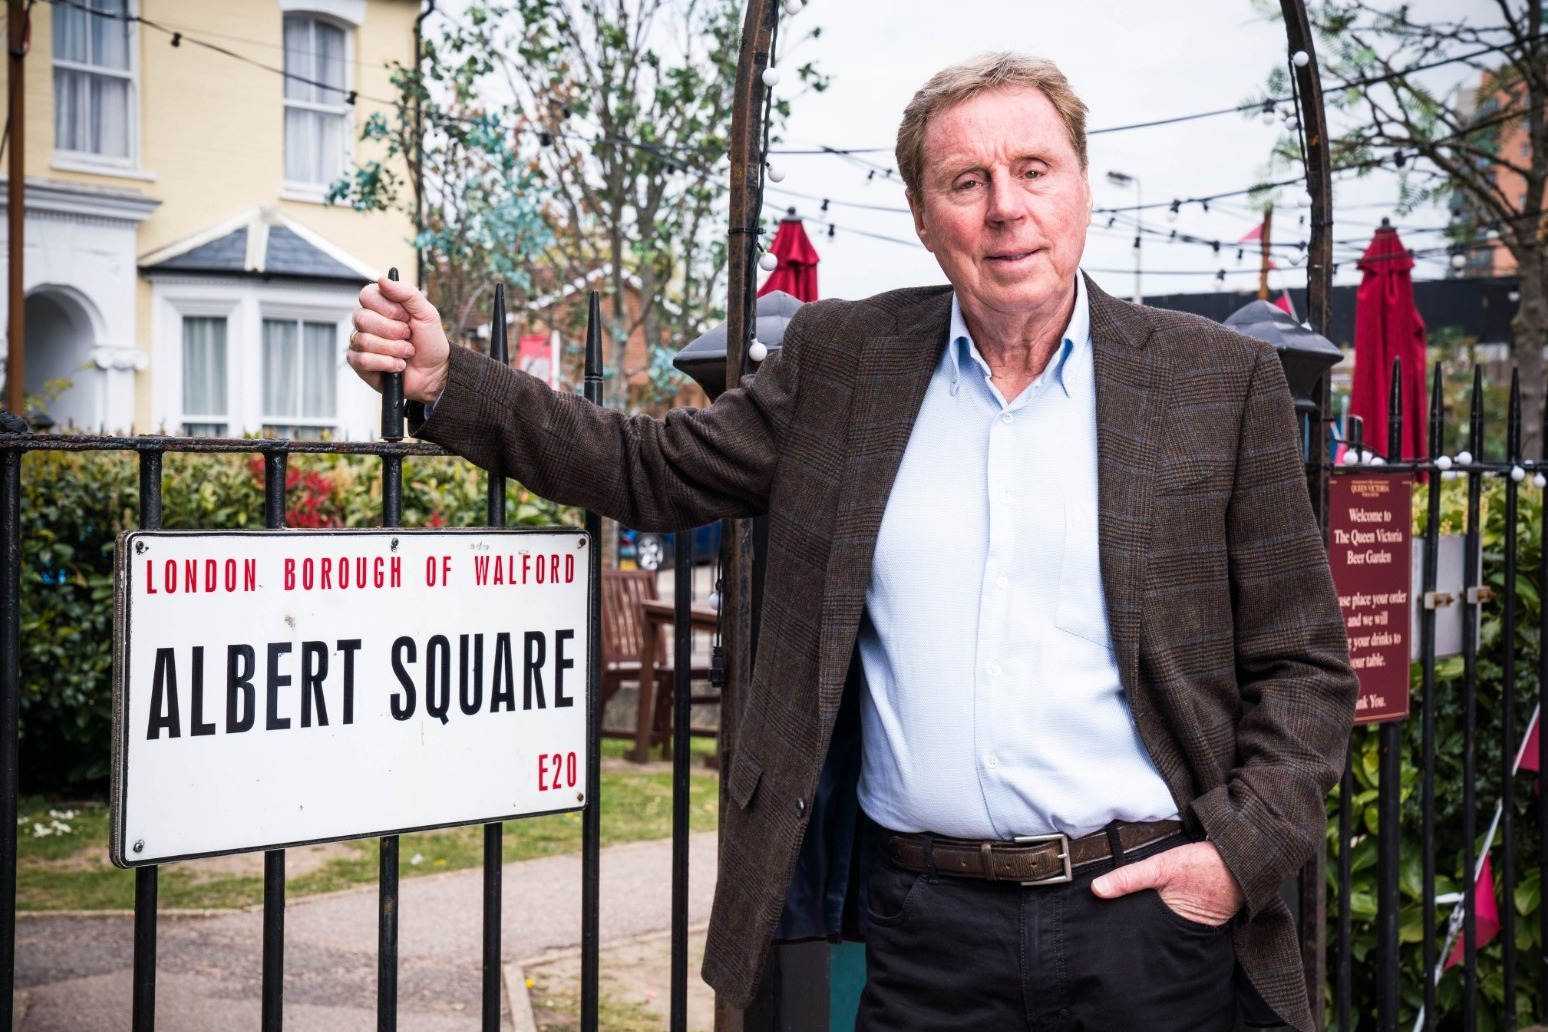 Harry Redknapp to make EastEnders cameo